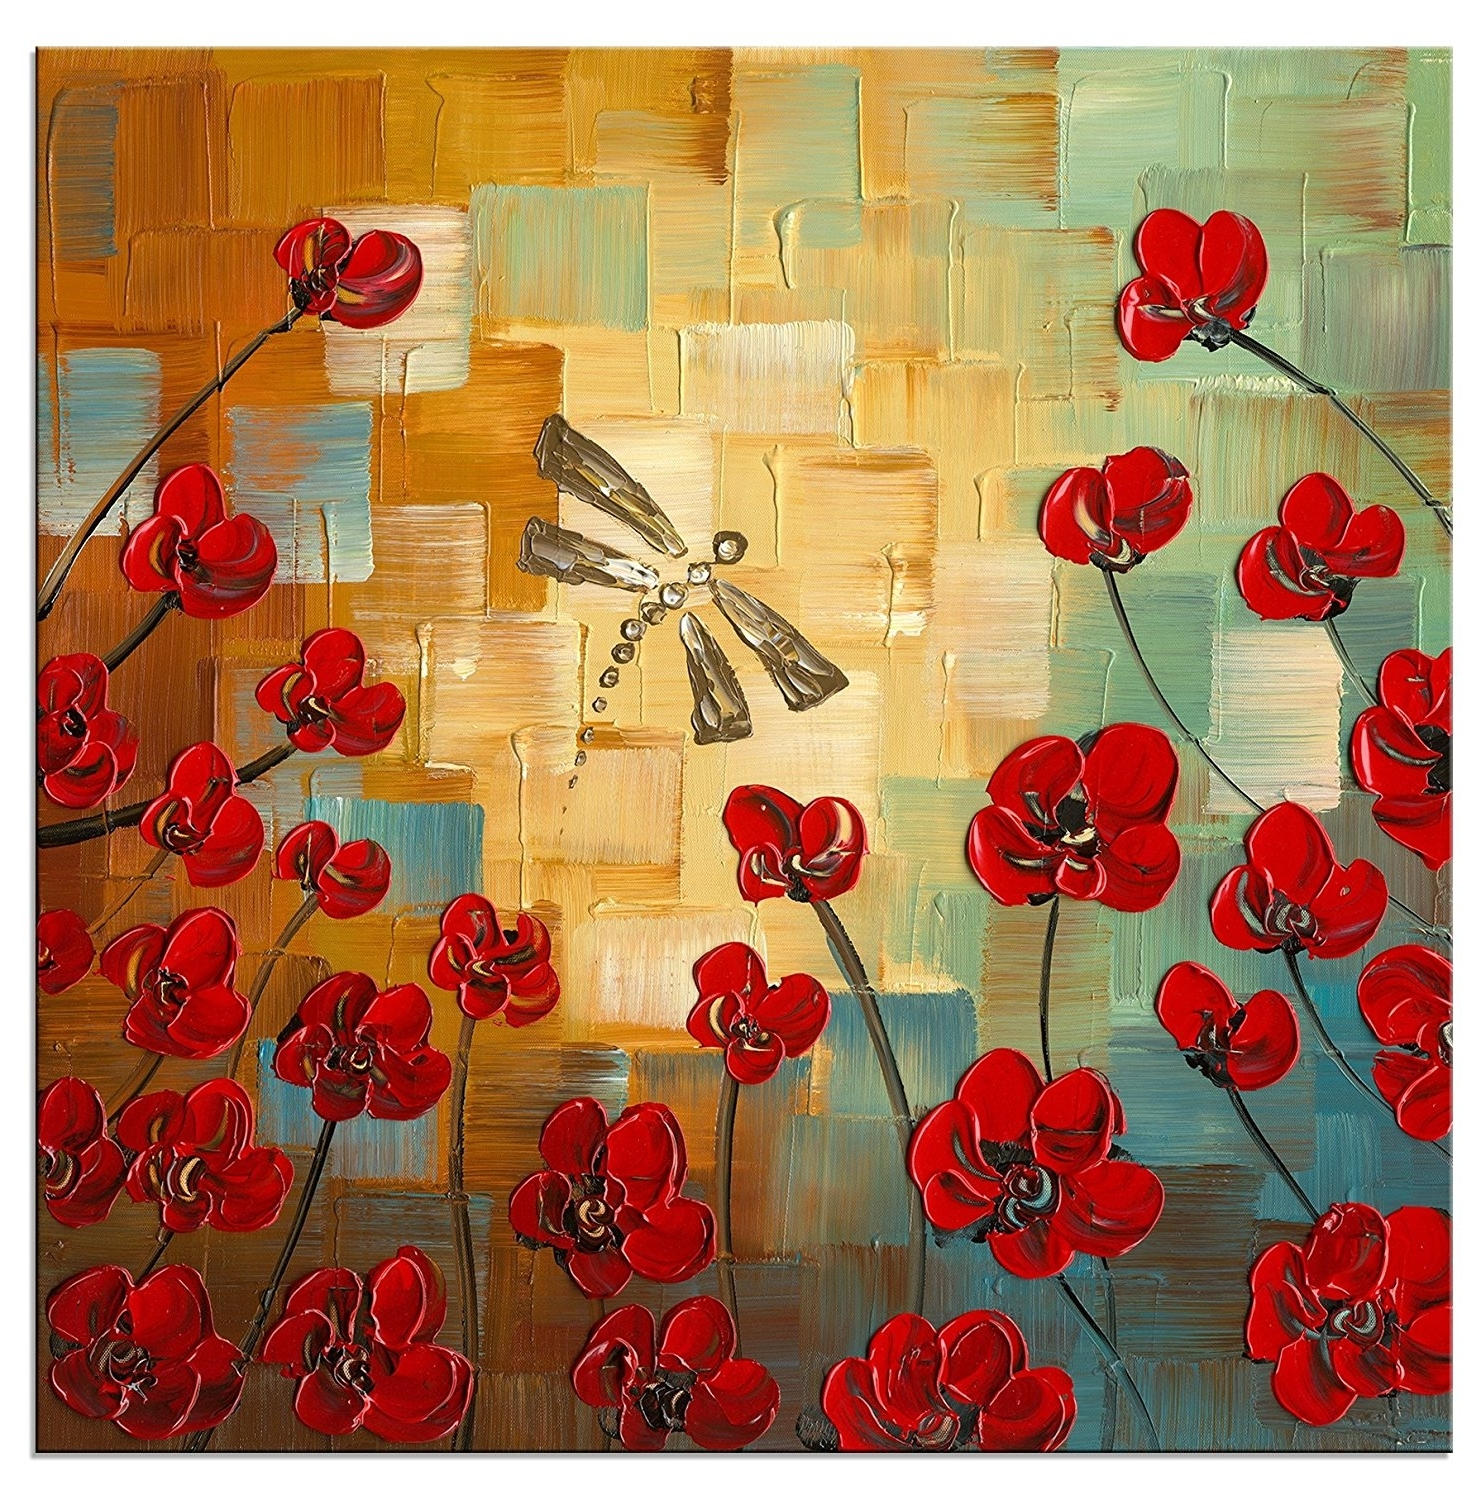 [%Dragonfly Modern Flowers Artwork 100% Hand Painted Stretched And With Preferred Floral Canvas Wall Art|Floral Canvas Wall Art Intended For Newest Dragonfly Modern Flowers Artwork 100% Hand Painted Stretched And|Newest Floral Canvas Wall Art For Dragonfly Modern Flowers Artwork 100% Hand Painted Stretched And|Well Known Dragonfly Modern Flowers Artwork 100% Hand Painted Stretched And With Regard To Floral Canvas Wall Art%] (View 1 of 20)